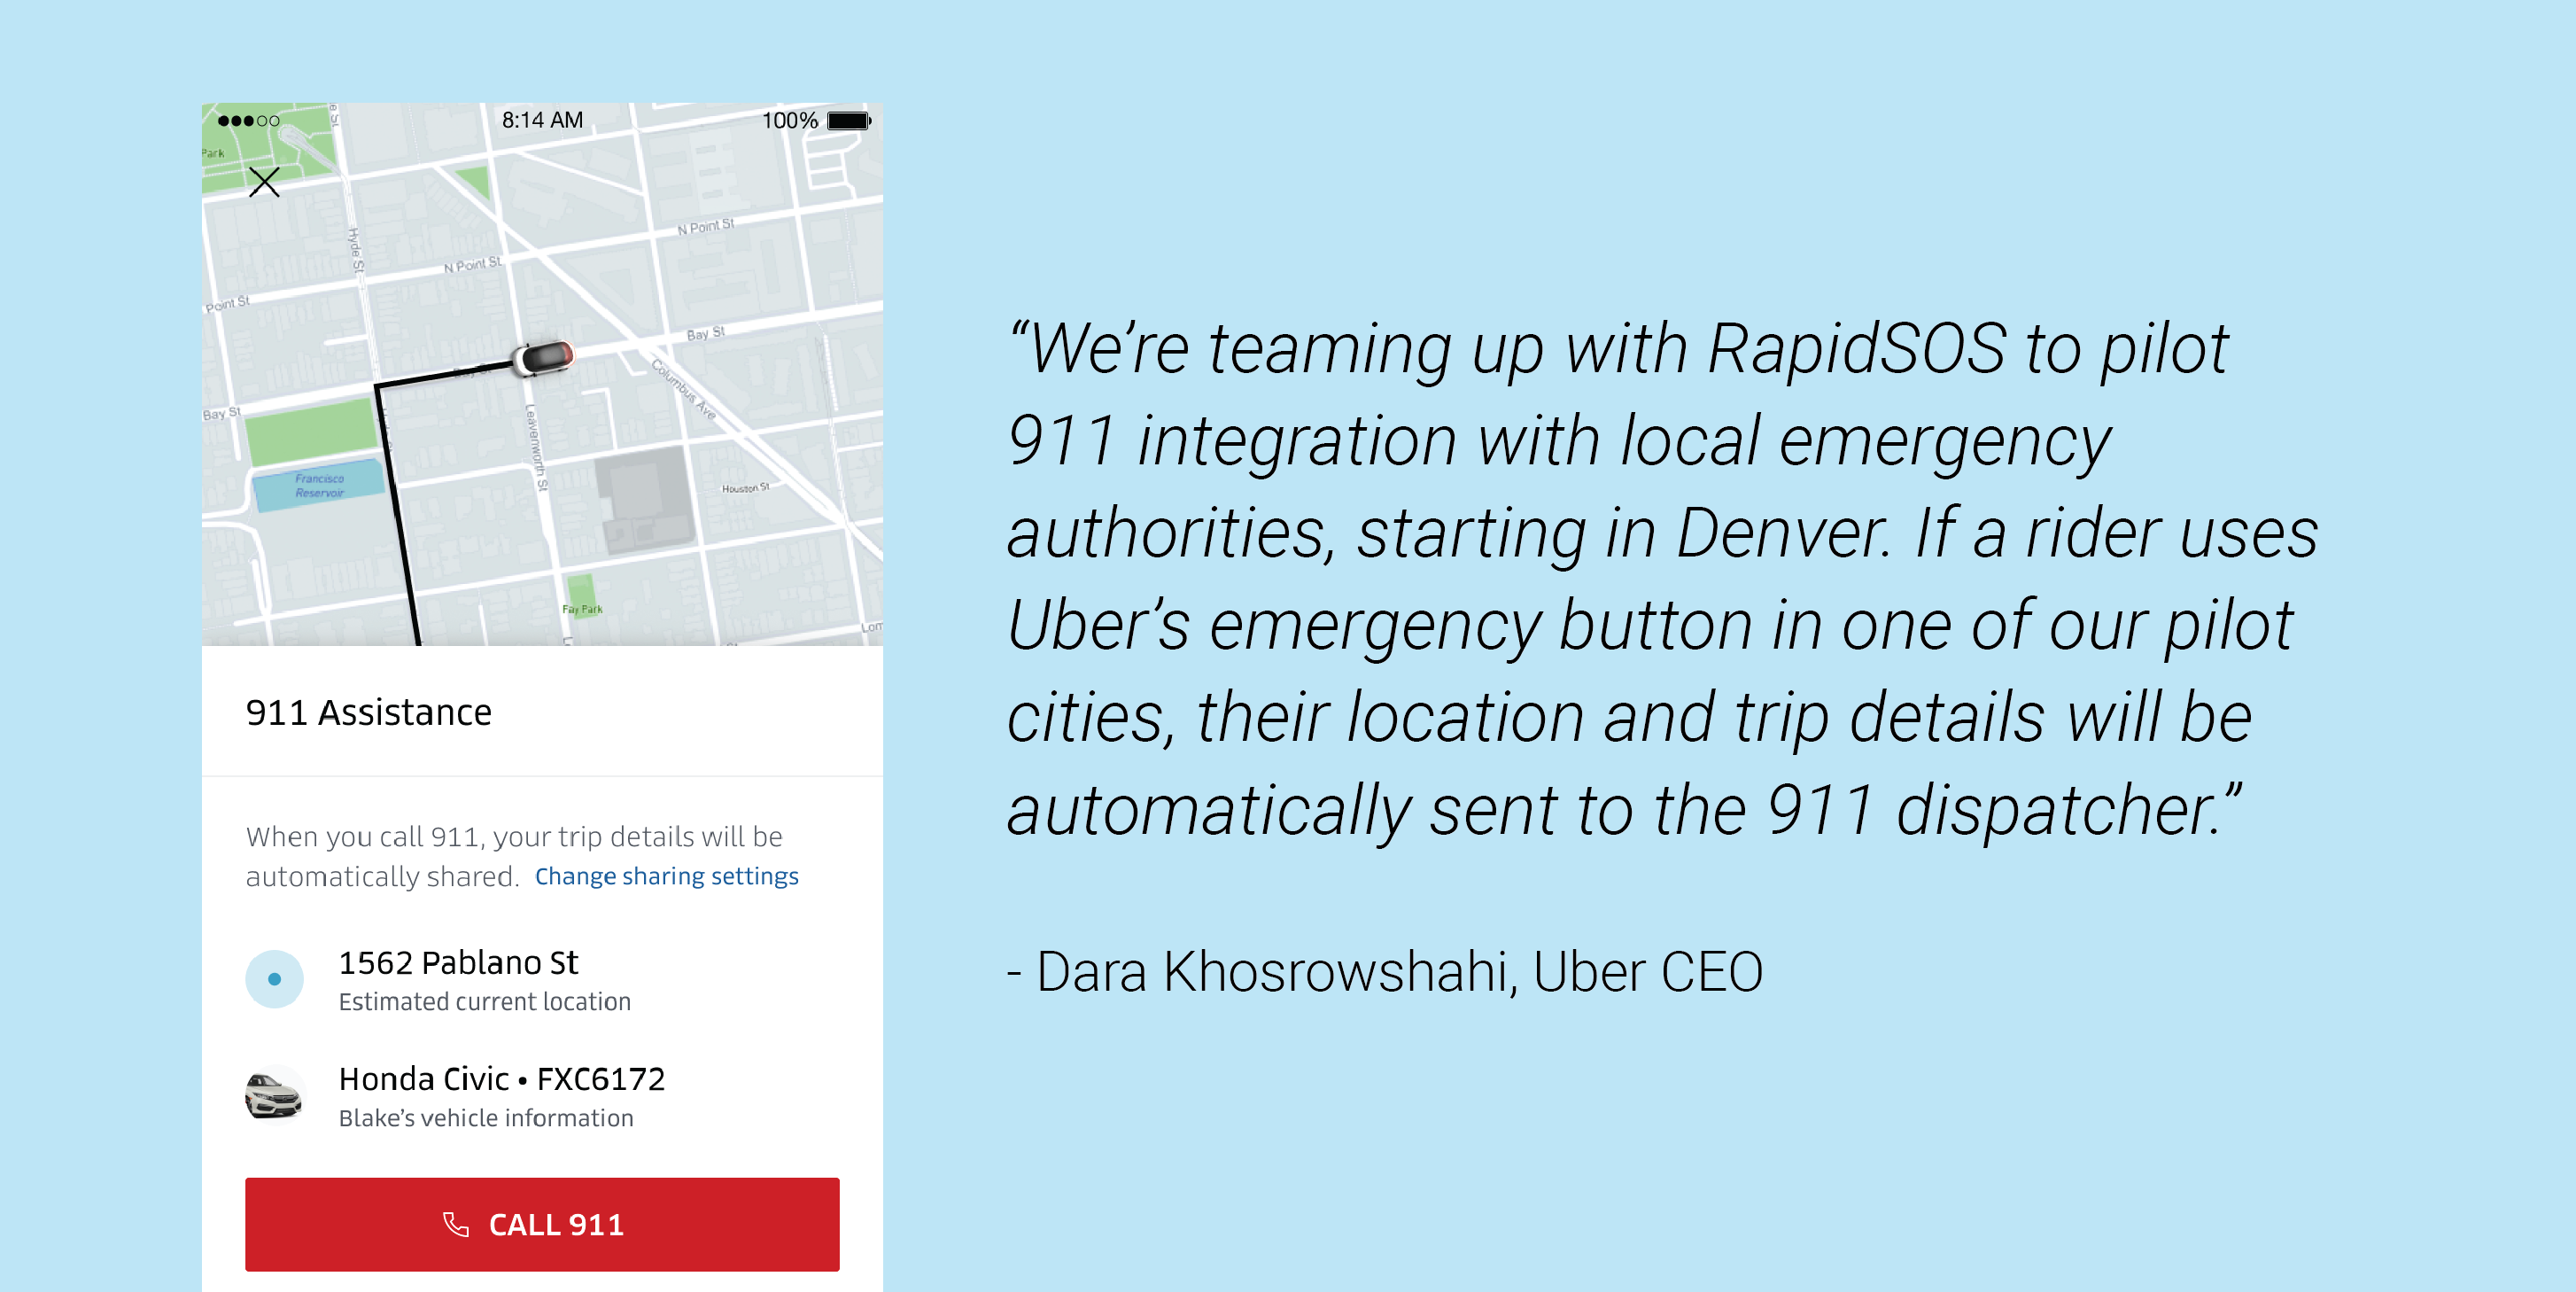 uber-ceo-quote-04